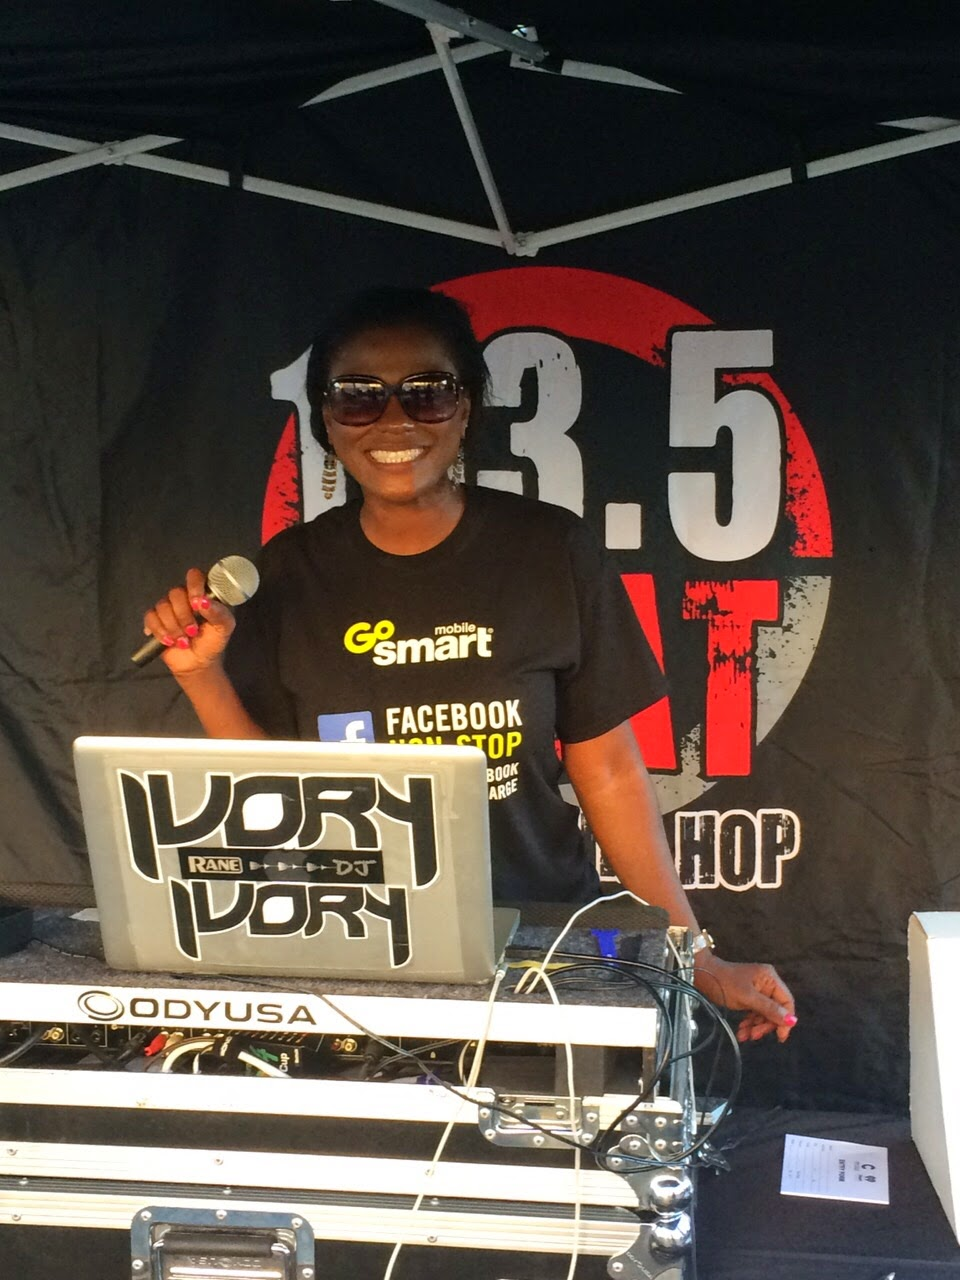 Go Smart Mobile Promo with 103.5 the beat FM